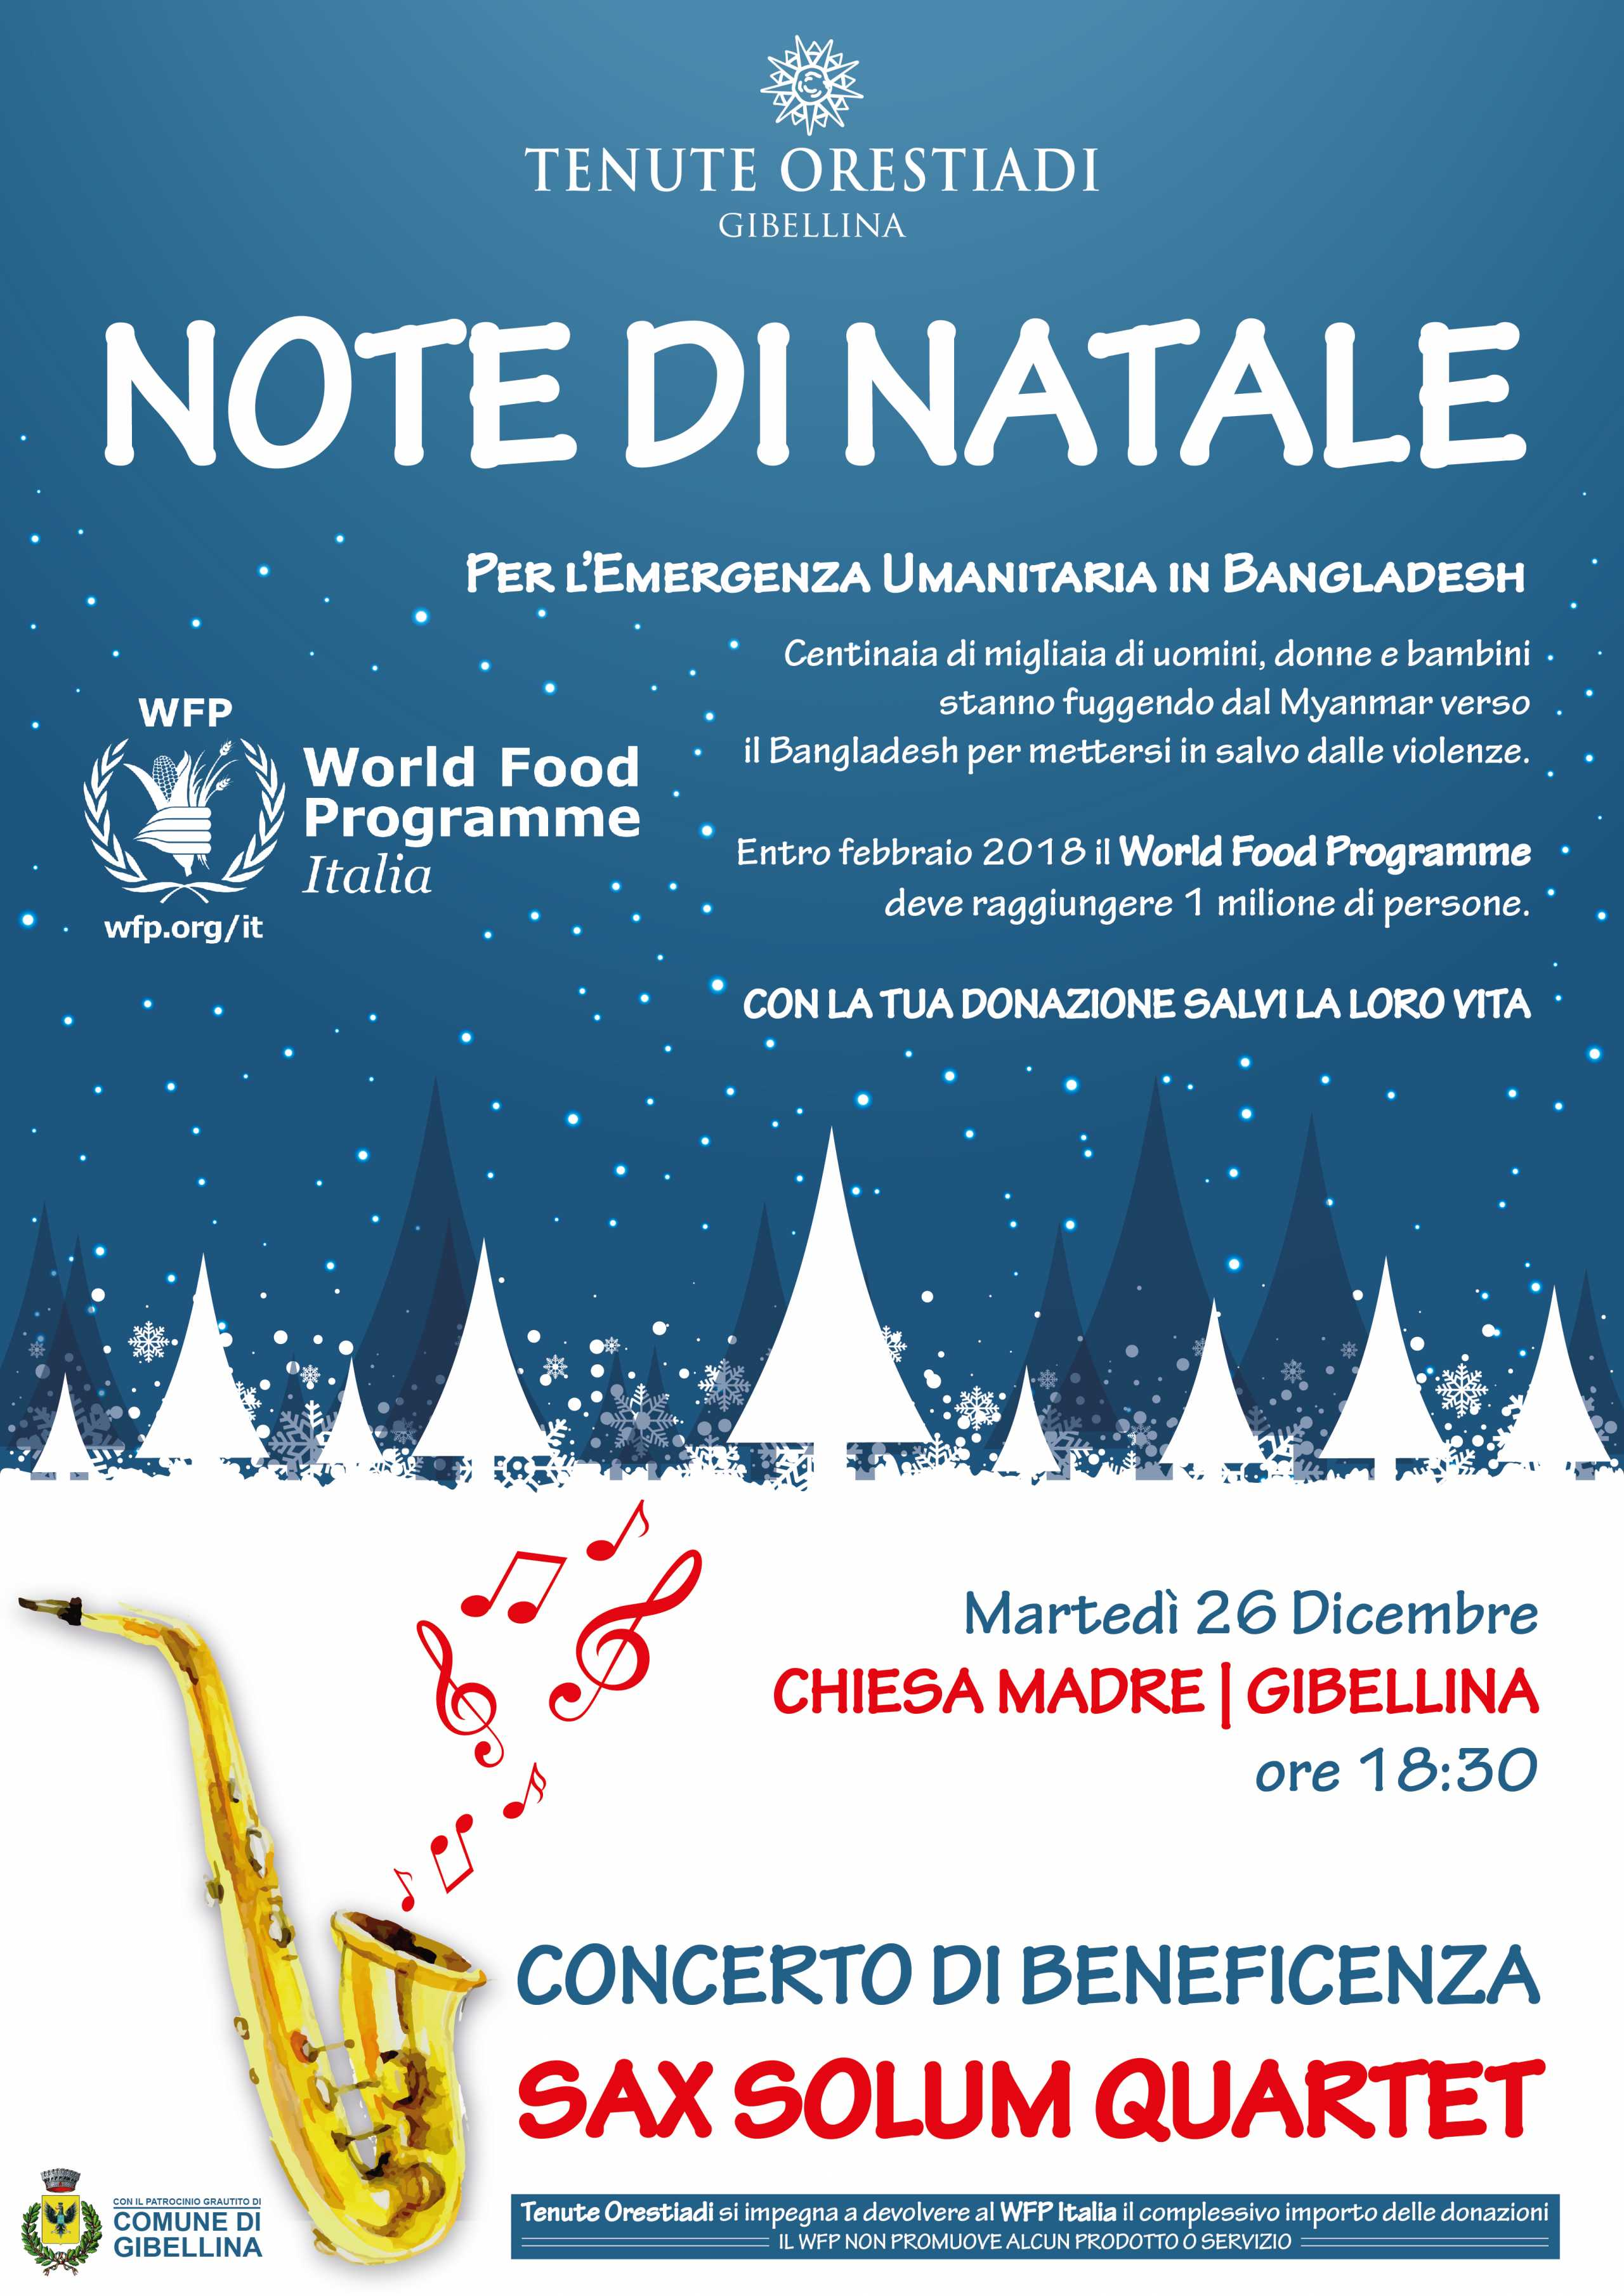 Note Di Natale: Raccolta Fondi Per Il World Food Programme